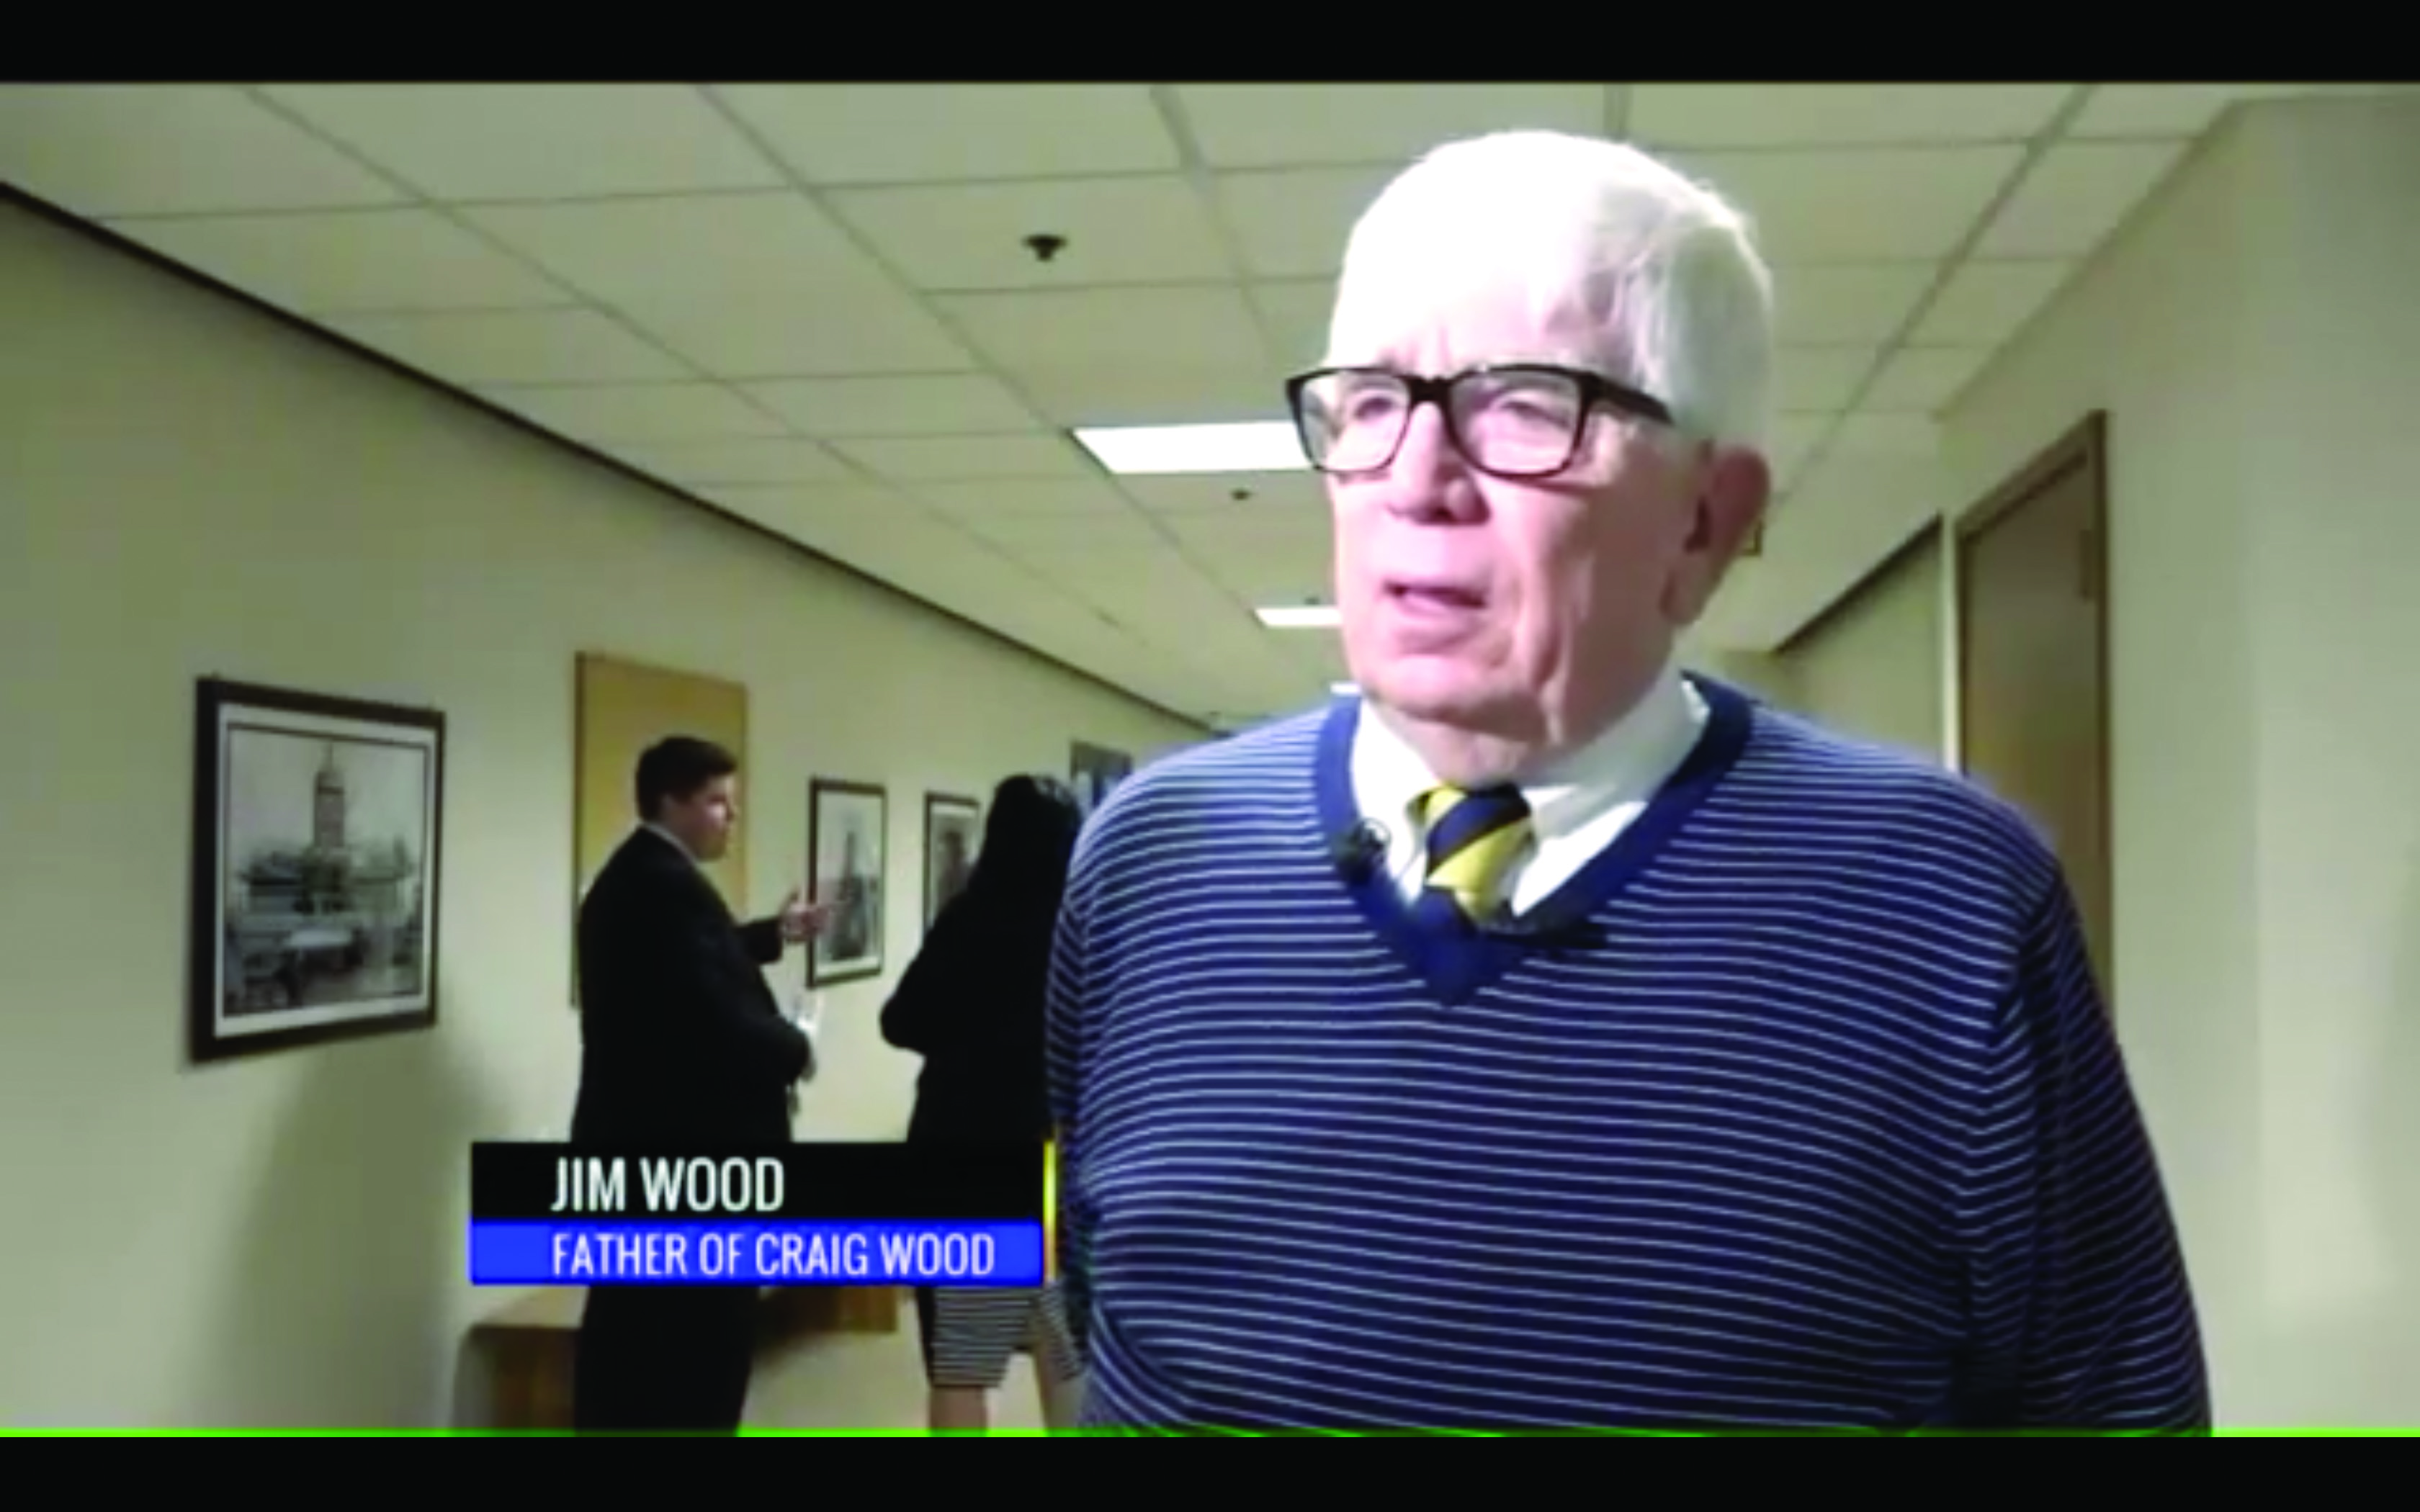 Jim Wood, father of Craig Wood